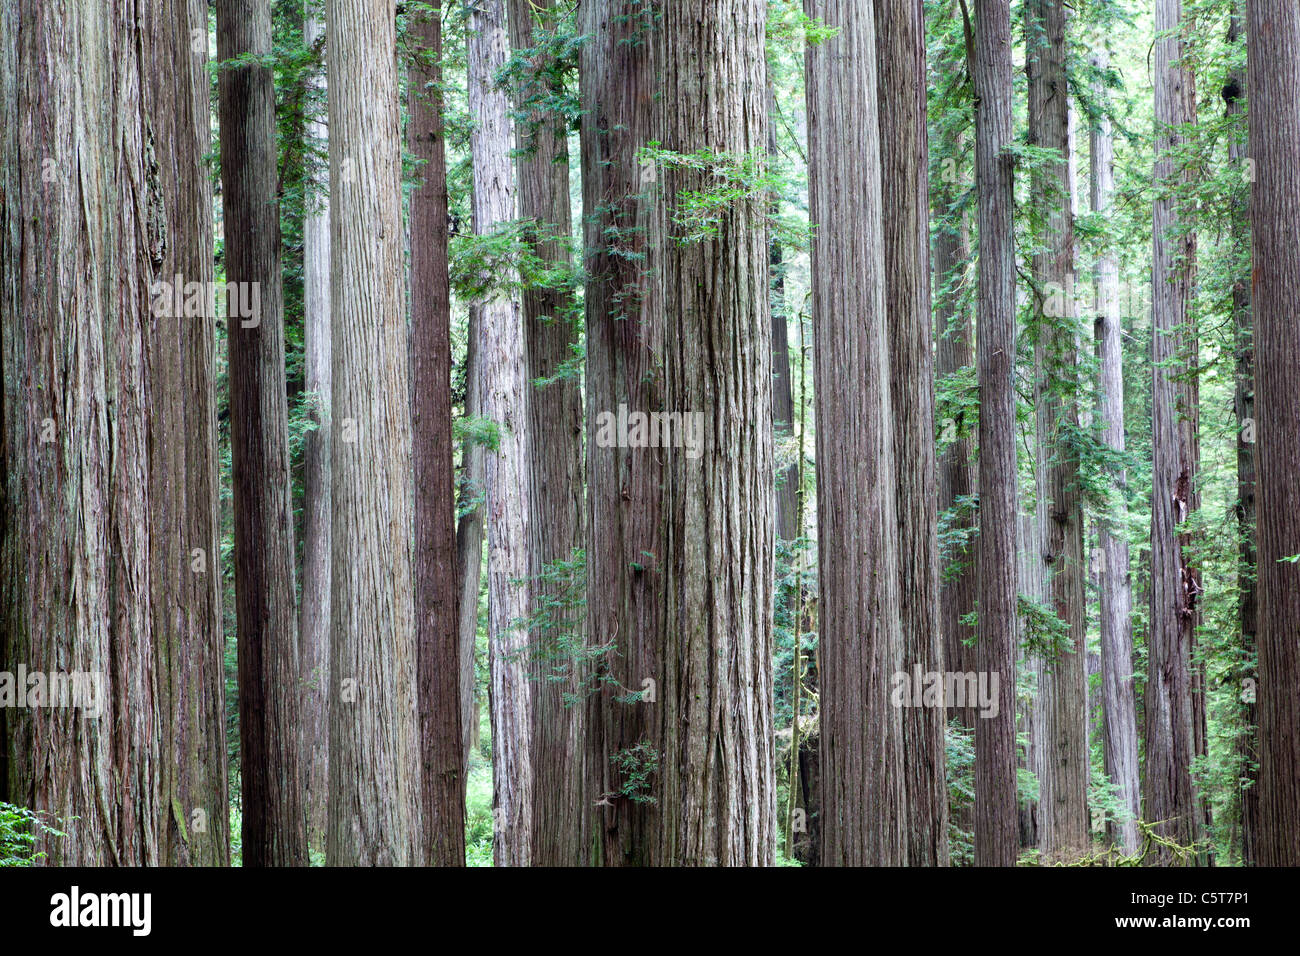 Redwood Trees on Boy Scout Tree Trail California USA - Stock Image